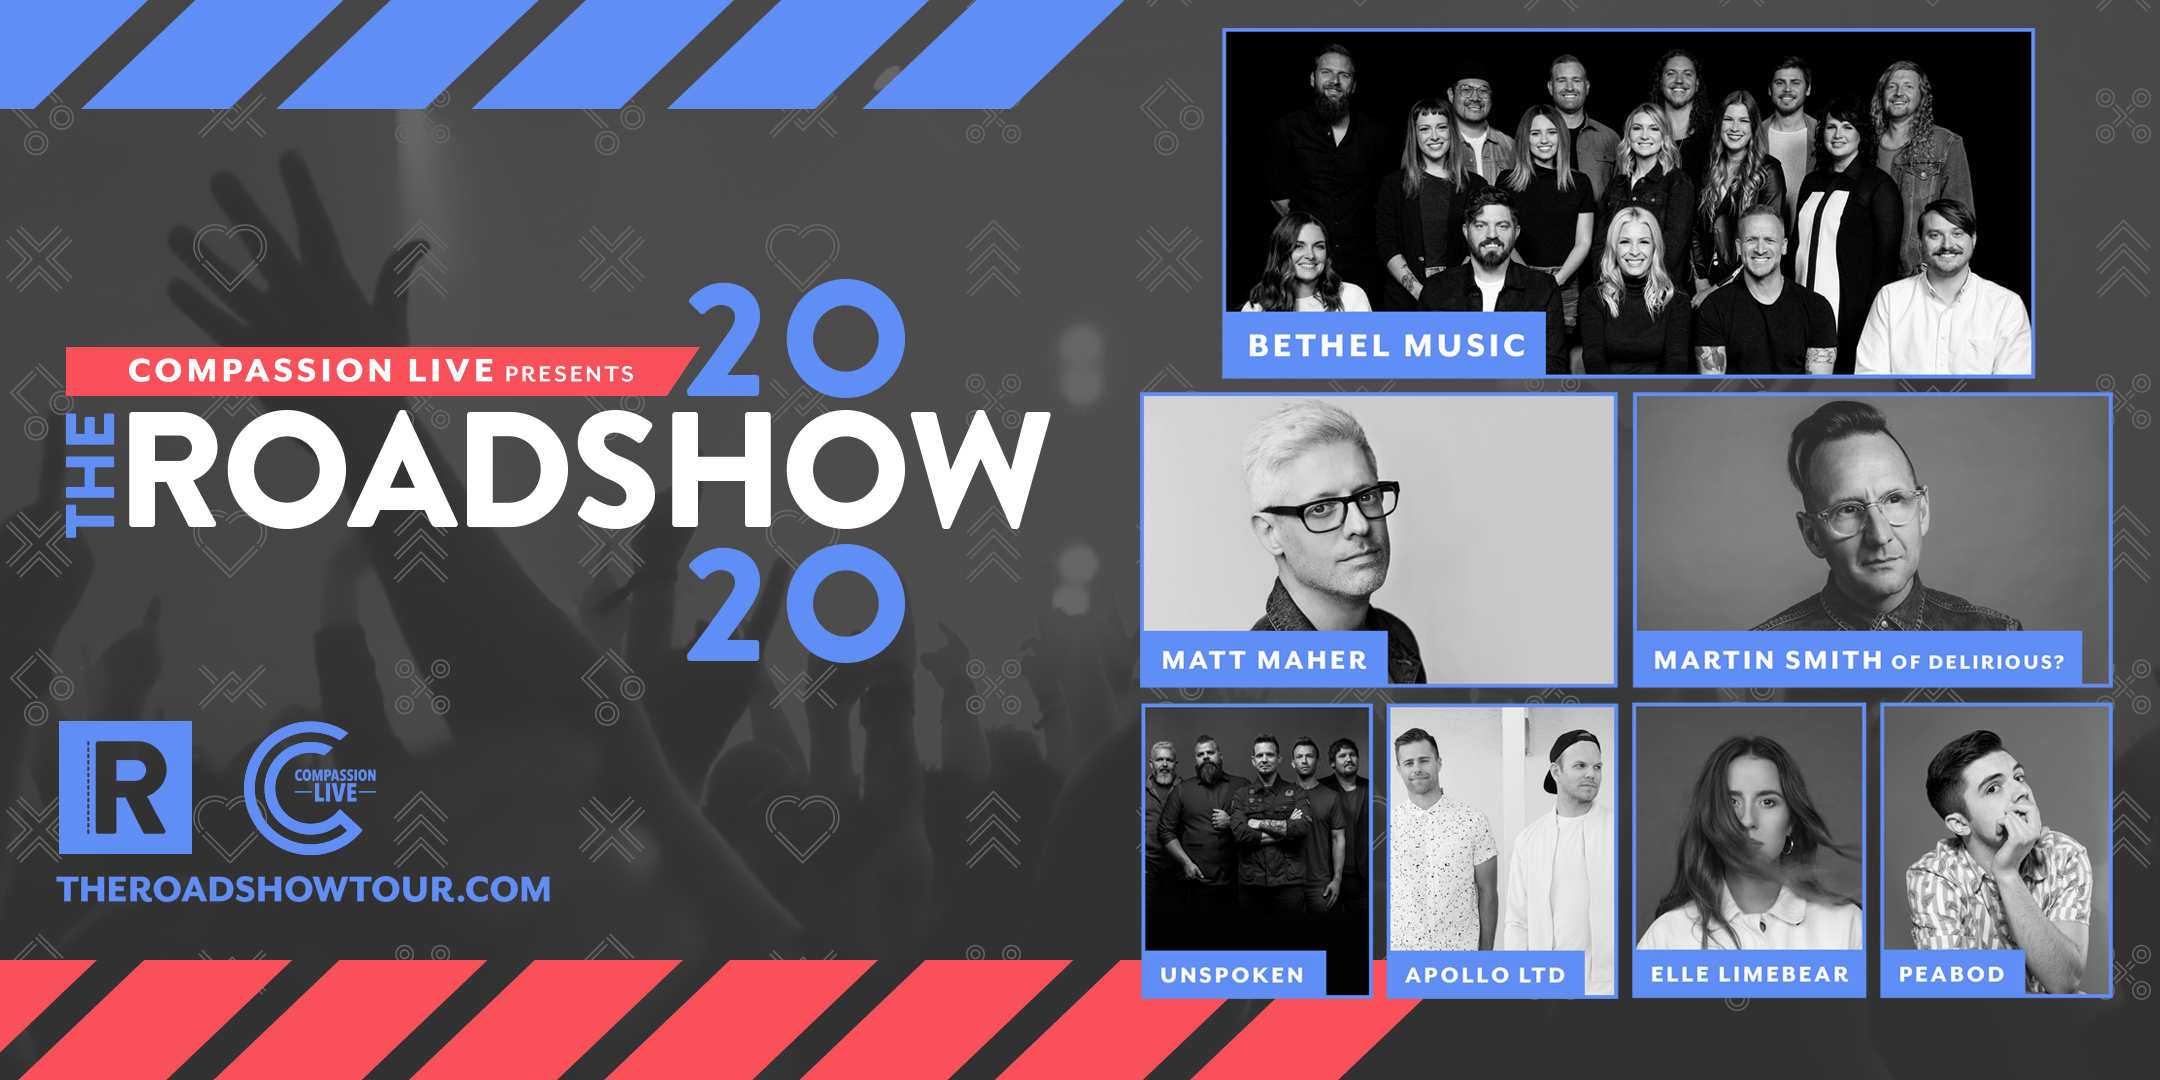 Enter to Win: The Roadshow 2020